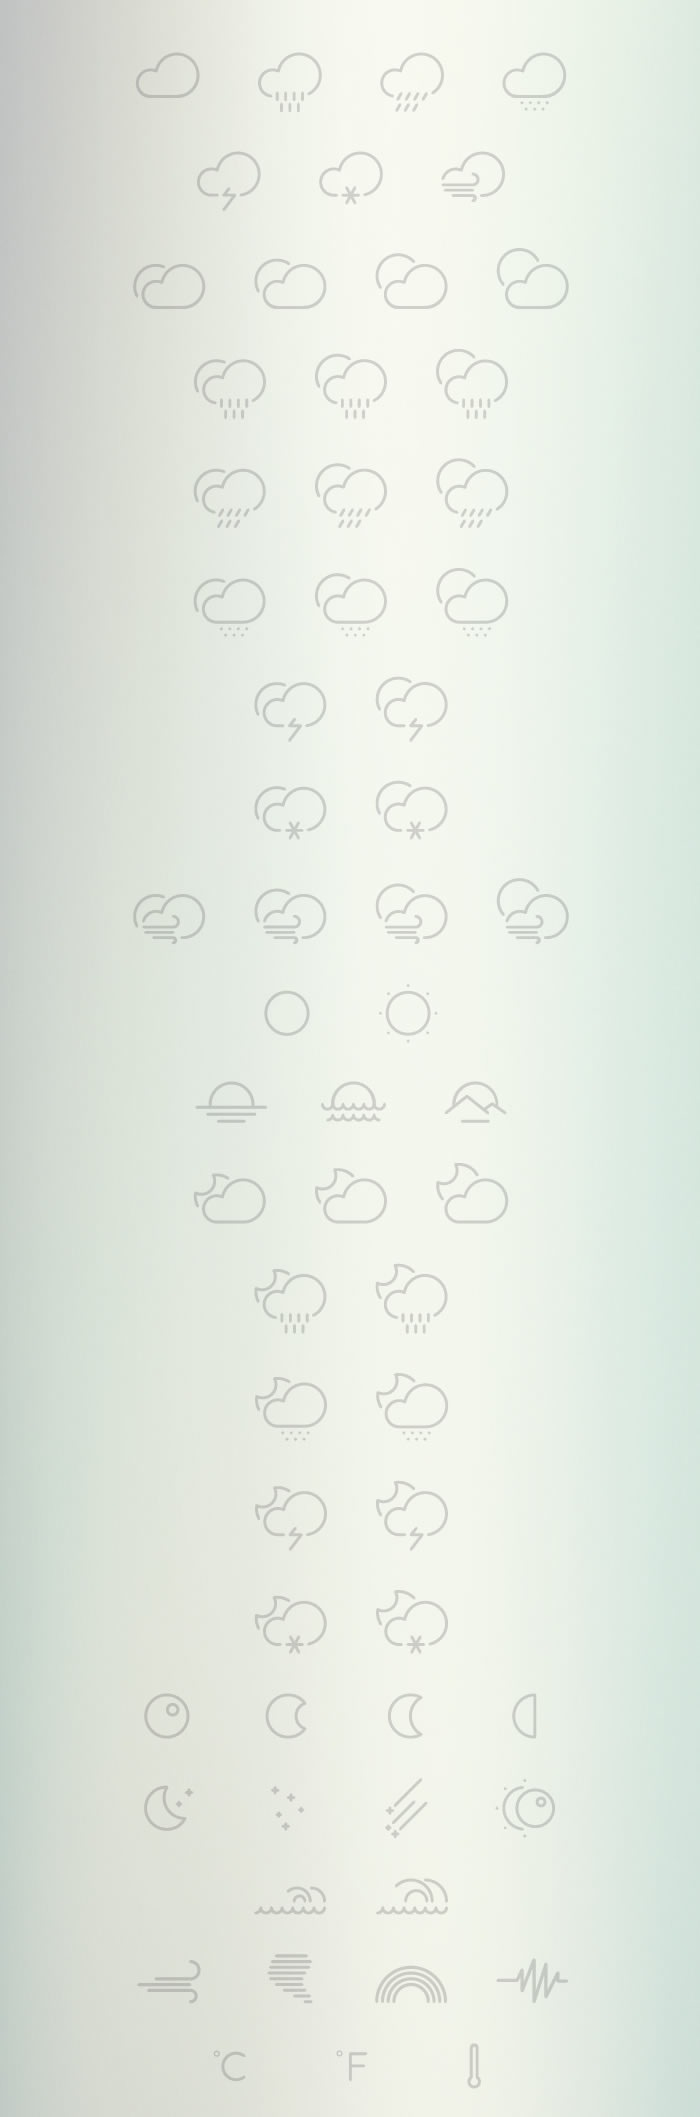 Freebie: The Outlined Weather Icons Collection